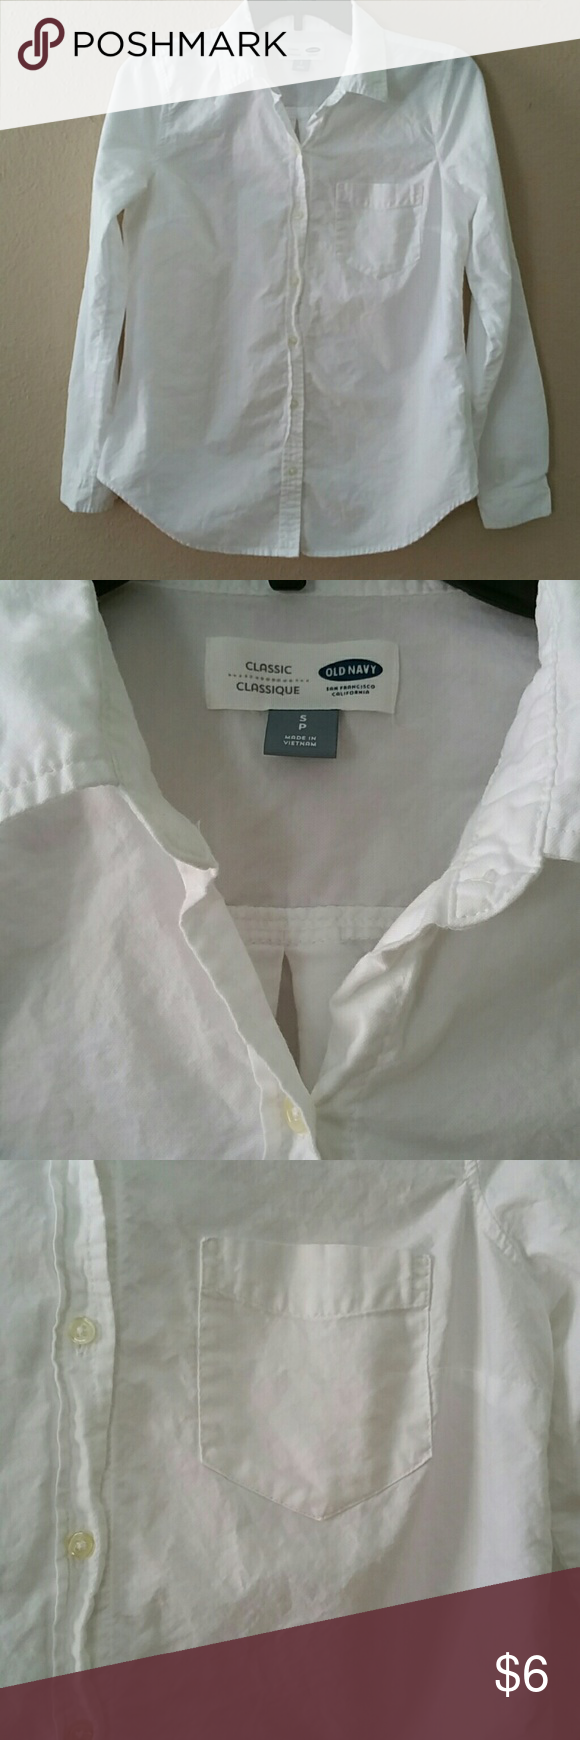 White dress shirt in great condition - size S Classic Old Navy dress shirt in great condition, no tears or stains, just need to be iron a little! One front pocket on the left, buttons all the way up and one button on each sleeve. 100% cotton Old Navy Tops Button Down Shirts